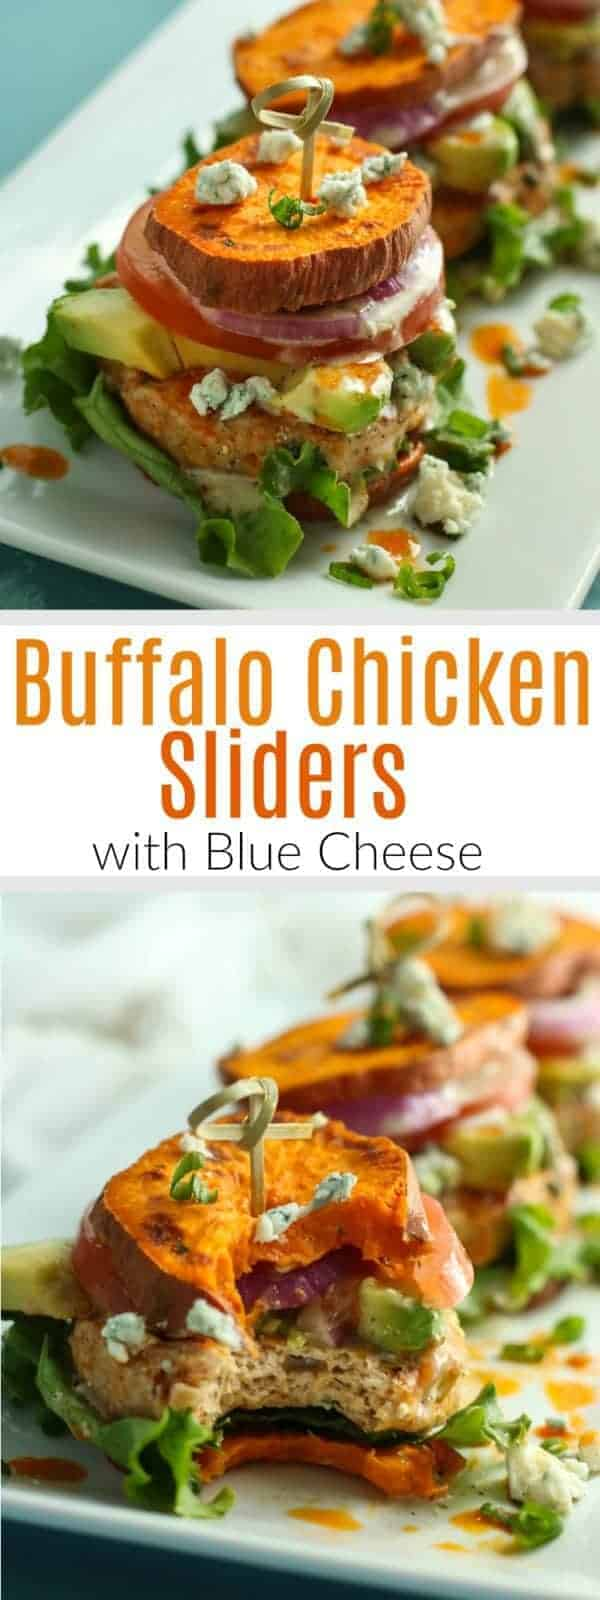 Buffalo Chicken Sliders | Buffalo wings meets sweet potato fries in these Buffalo Chicken Sliders! Serve with sliced onions, tomato, leaf lettuce and avocado, if desired. The Real Food Dietitians | https://therealfoodrds.com/buffalo-chicken-sliders/